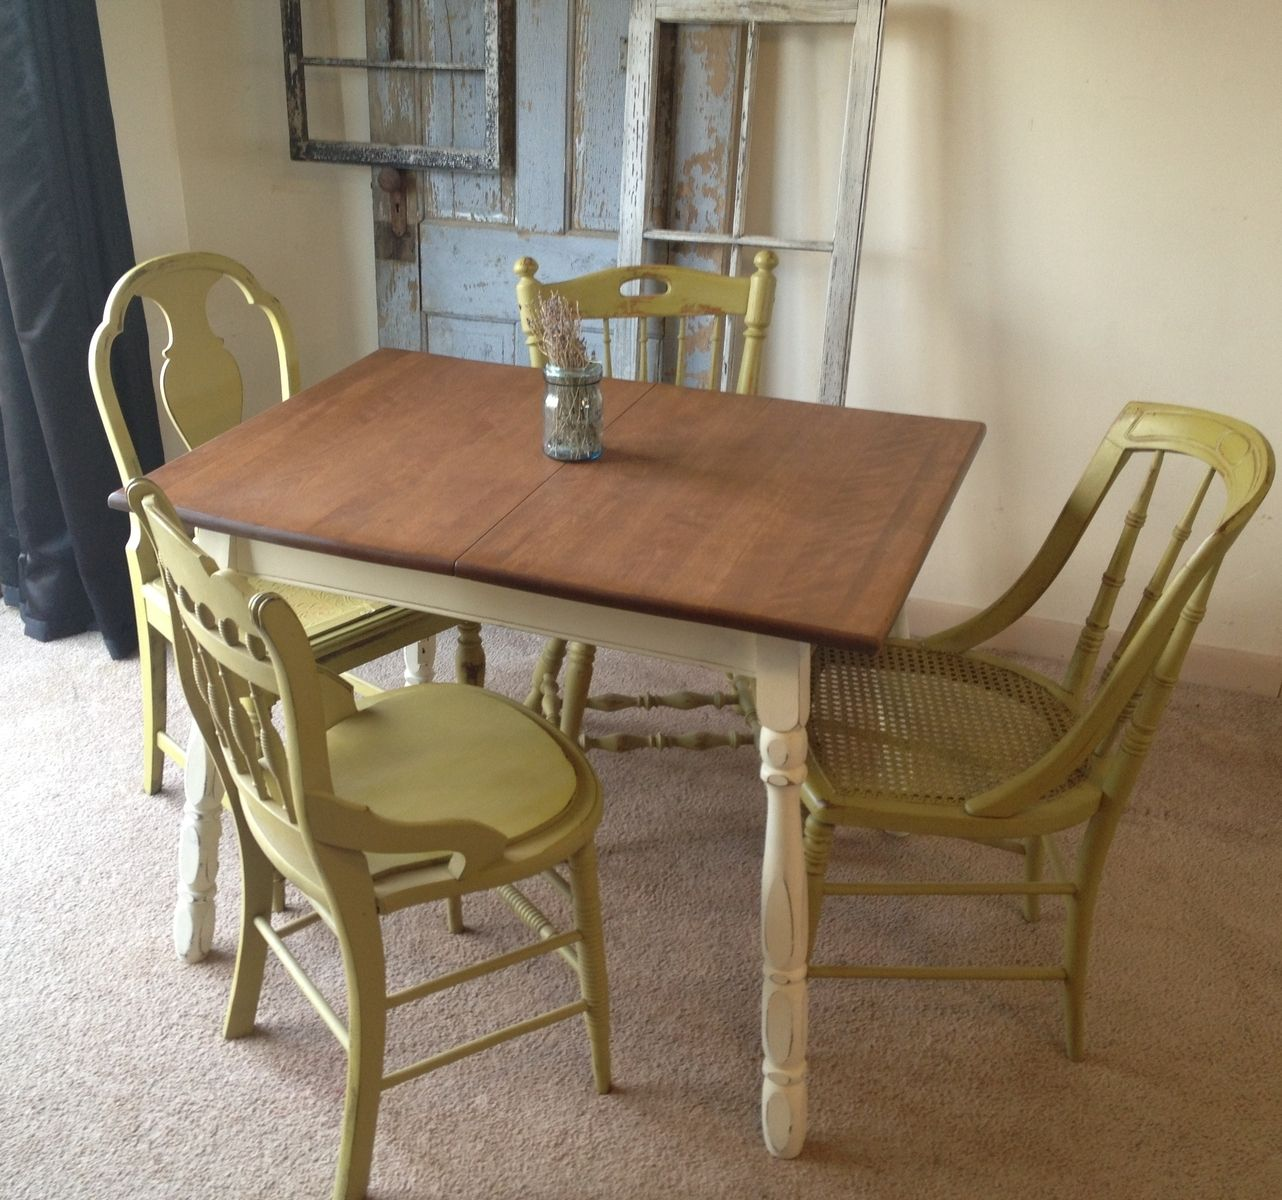 Vintage Small Kitchen Table: Like The Cream Painted Legs With The Natural  Wood Top